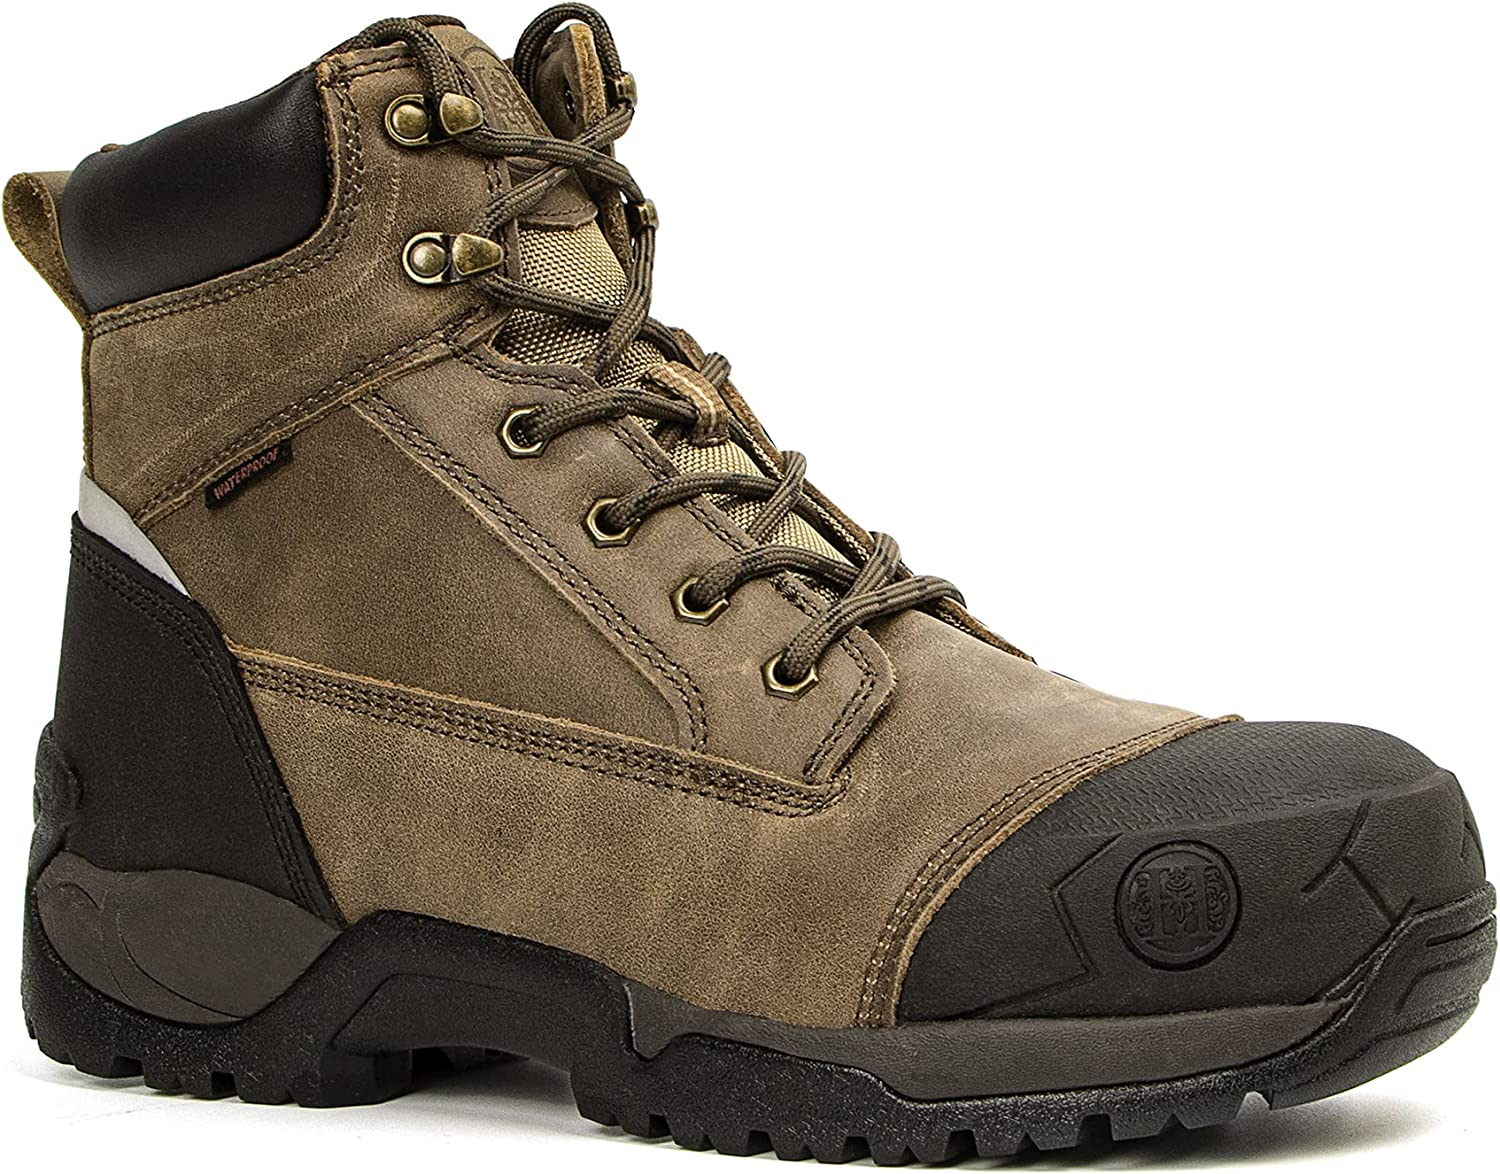 """Montwell Mens work boots, 6"""" Composite Toe Waterproof Lightweight Work Boots for Men, Slip & Puncture Resistant Safety EH Wide Working Shoes : Clothing, Shoes & Jewelry"""